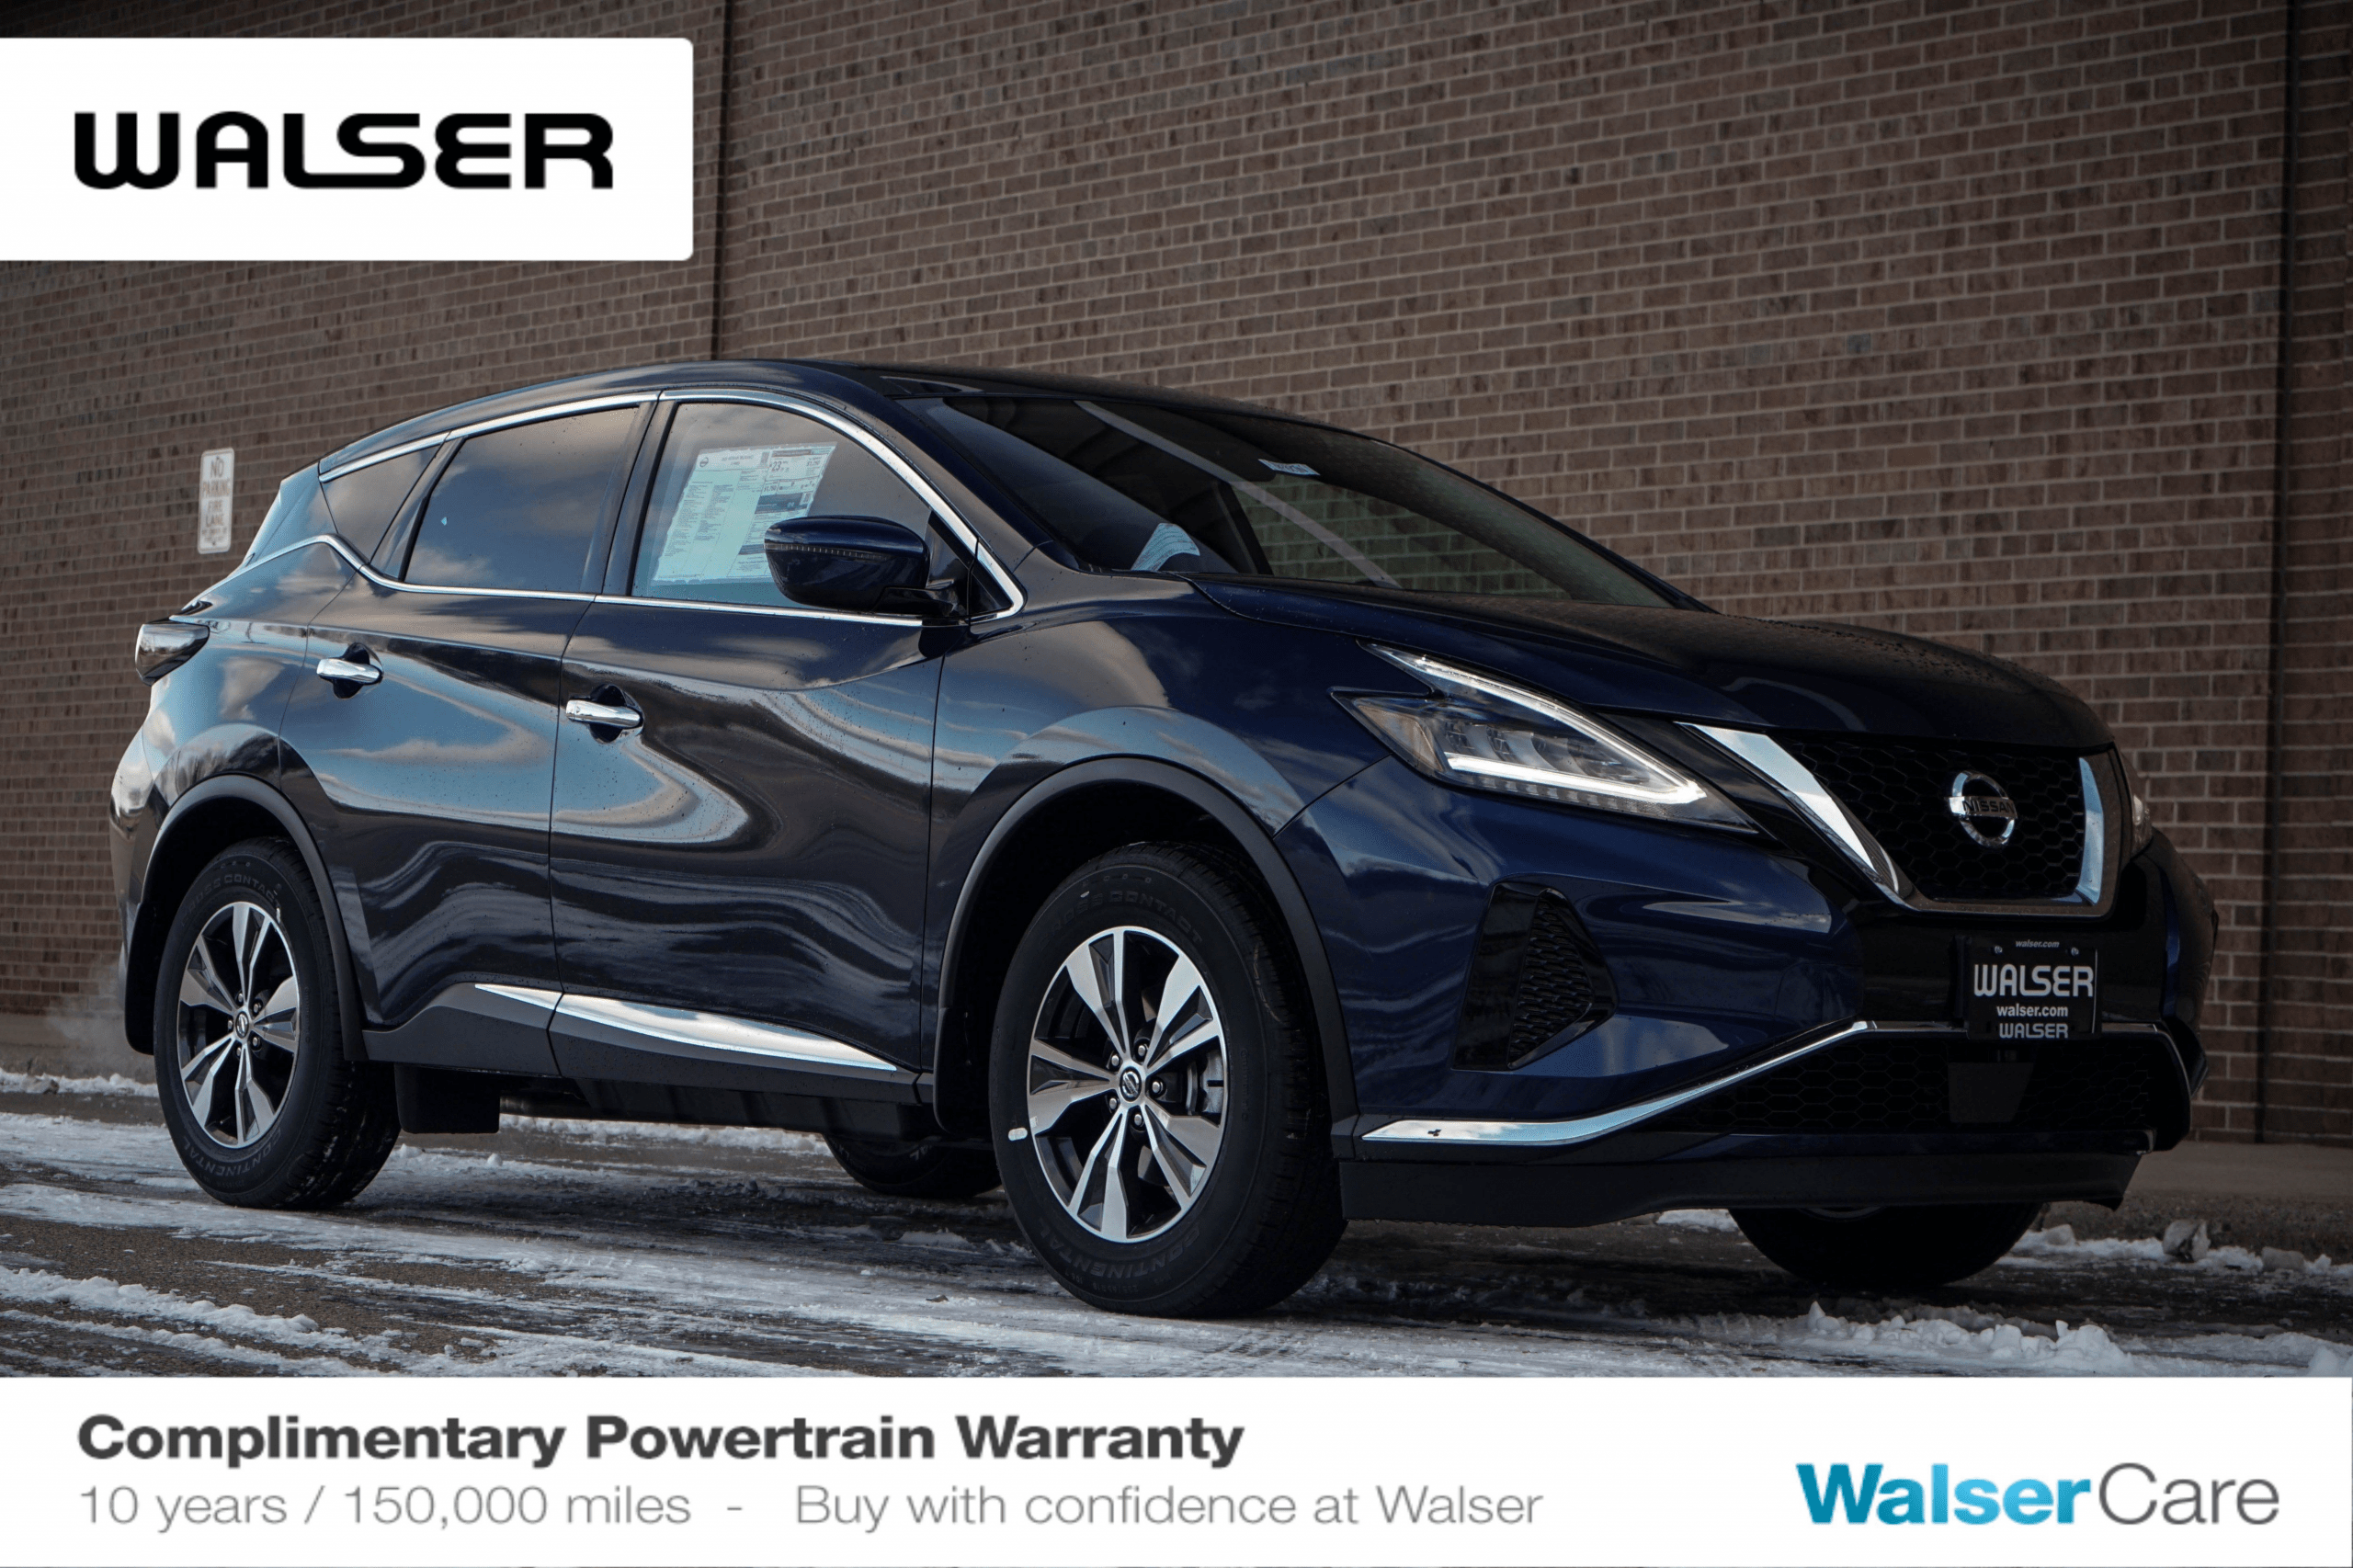 2020 Nissan Pathfinder Hybrid Spesification